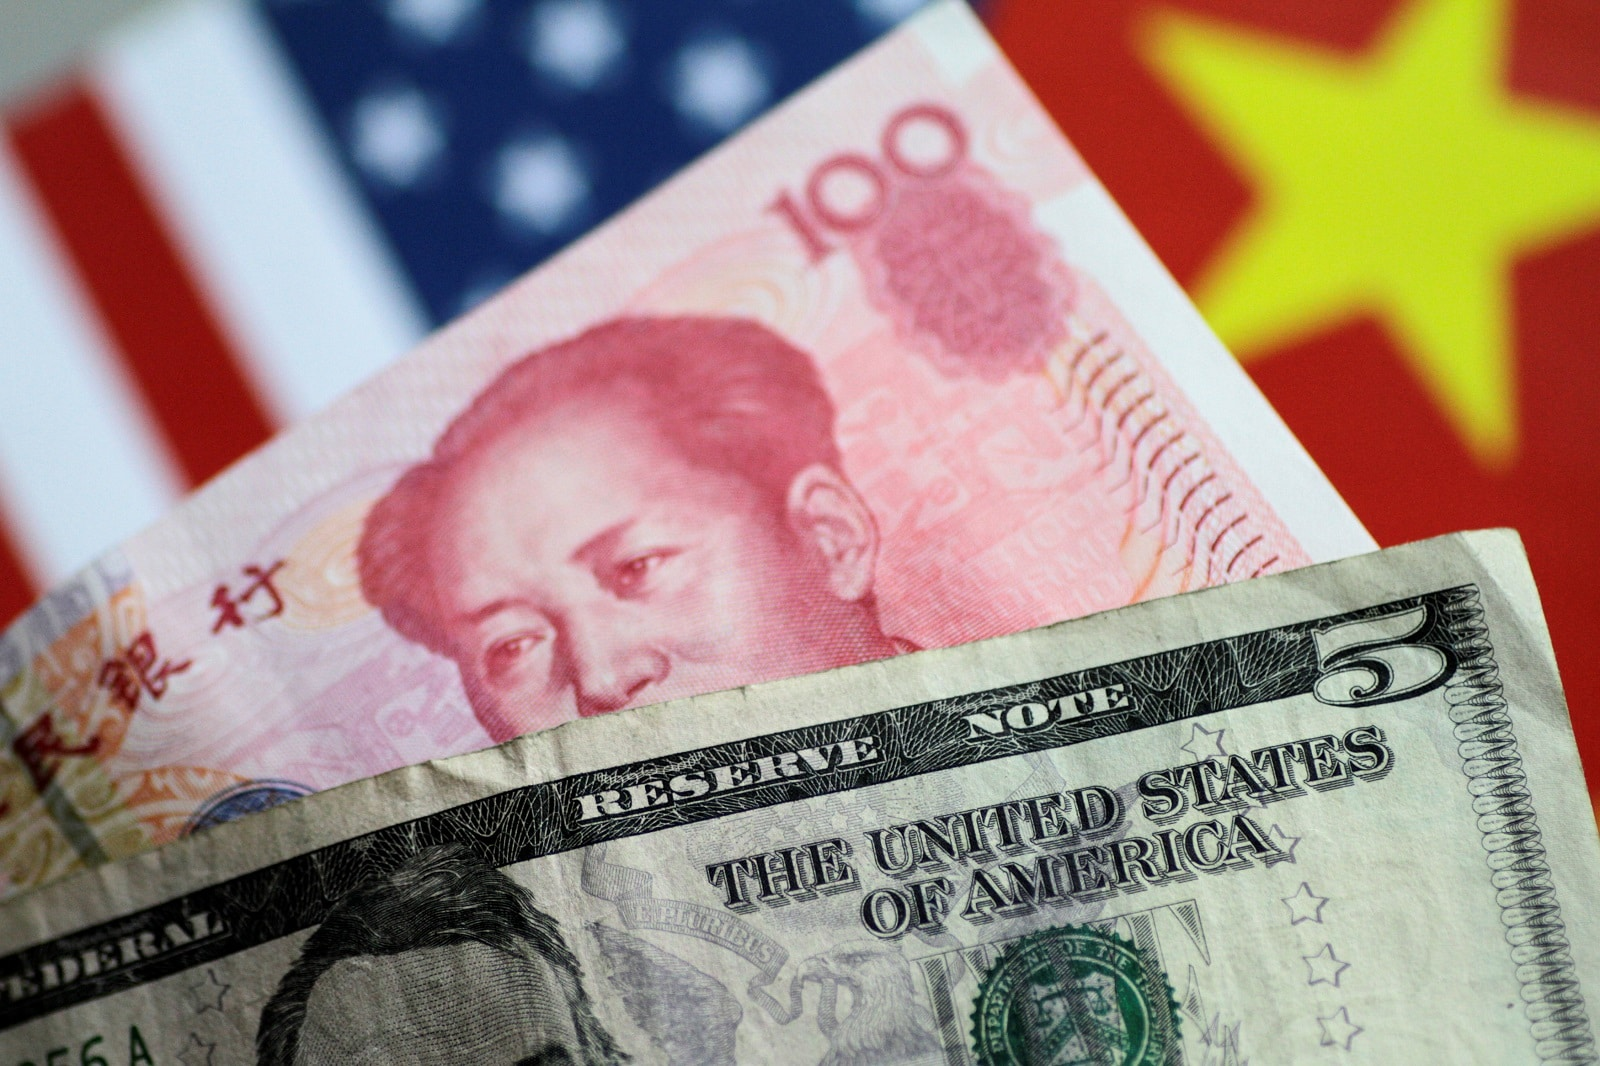 5. US-China's Boiling Trade War: A year-long US-China trade war boiled over on Monday as Washington accused Beijing of manipulating its currency after China let the yuan drop to its lowest point in more than a decade. The US Treasury Department announced late on Monday that it had determined for the first time since 1994 that China was manipulating its currency, knocking the US dollar sharply lower and sending gold prices to a six-year high. (Image: Reuters)